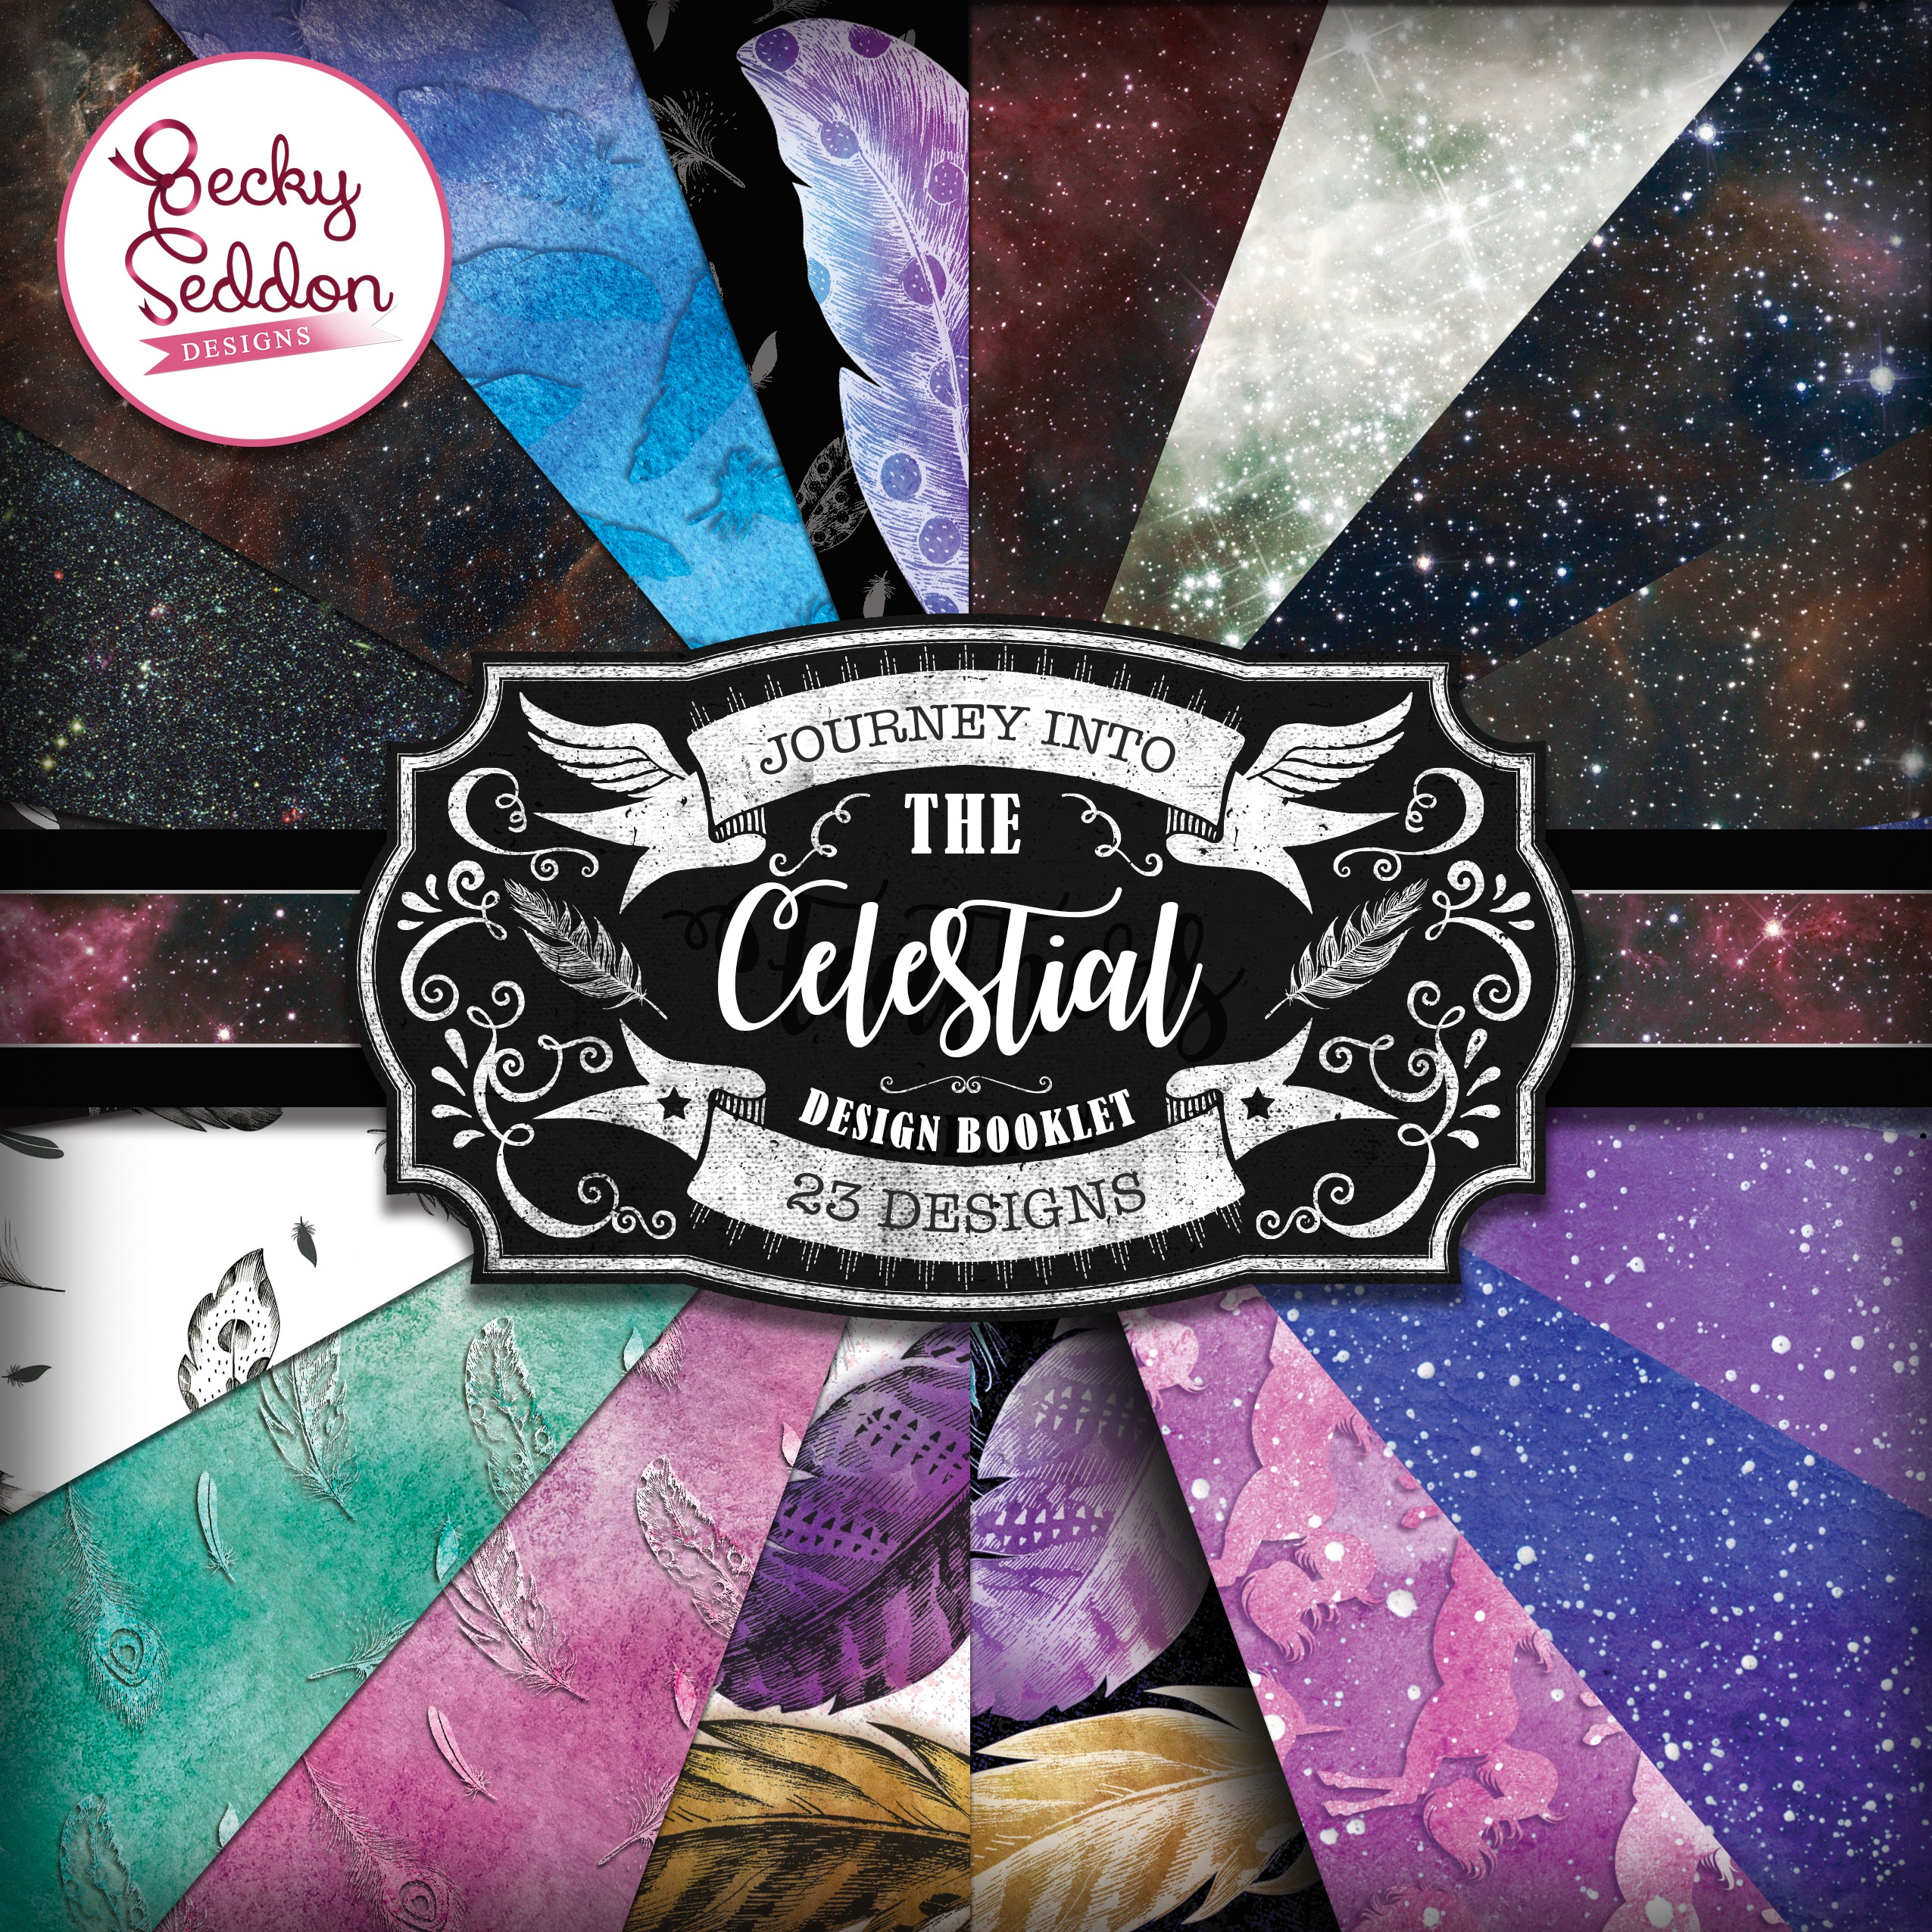 Becky Seddon Designs 'Journey into the Celestial' Design Booklet, Media by The Craft House